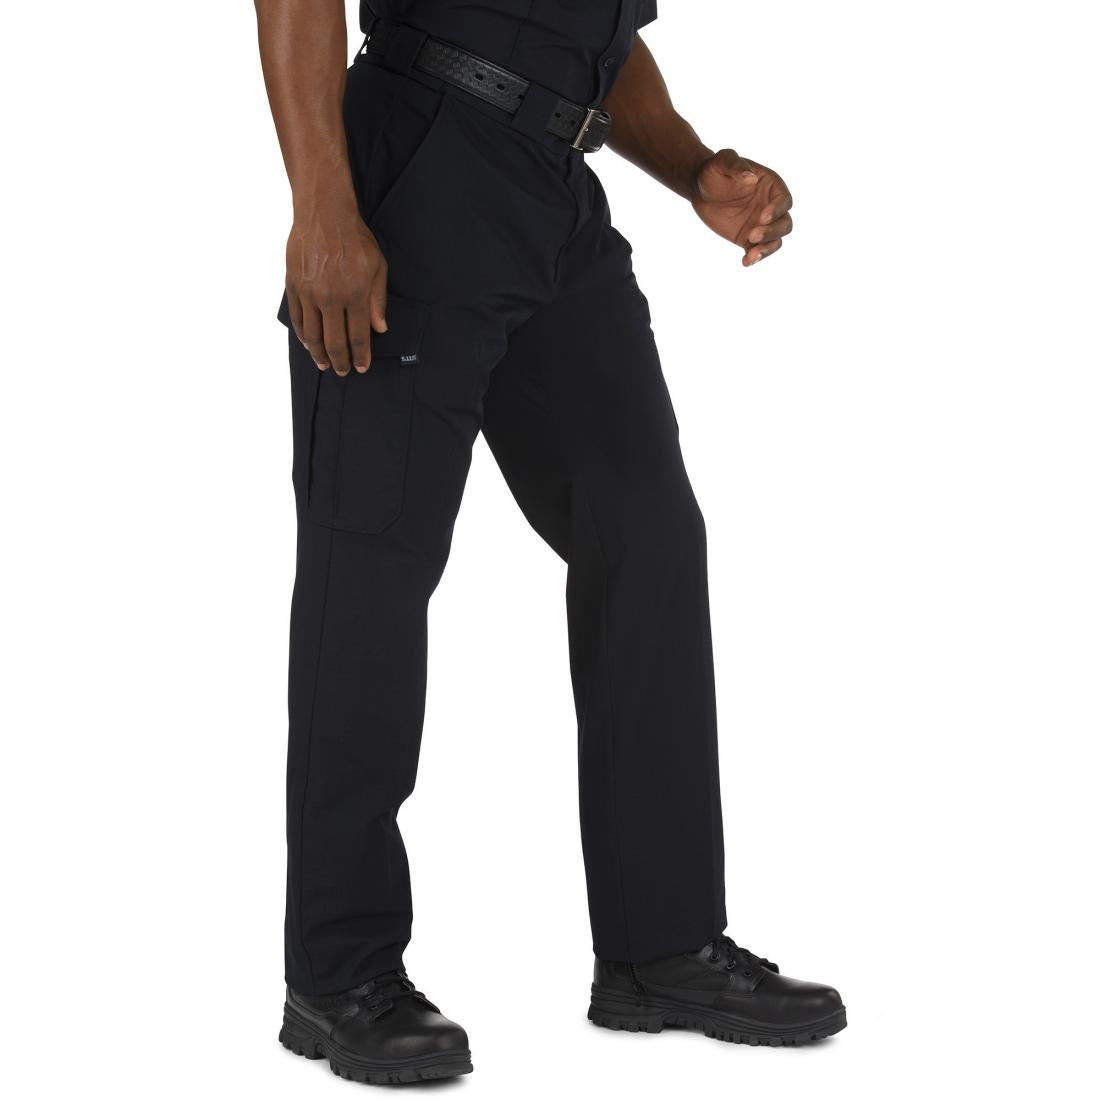 5.11 Tactical 74427 Men's 5.11 Stryke Class-B PDU Cargo Pant Midnight Navy